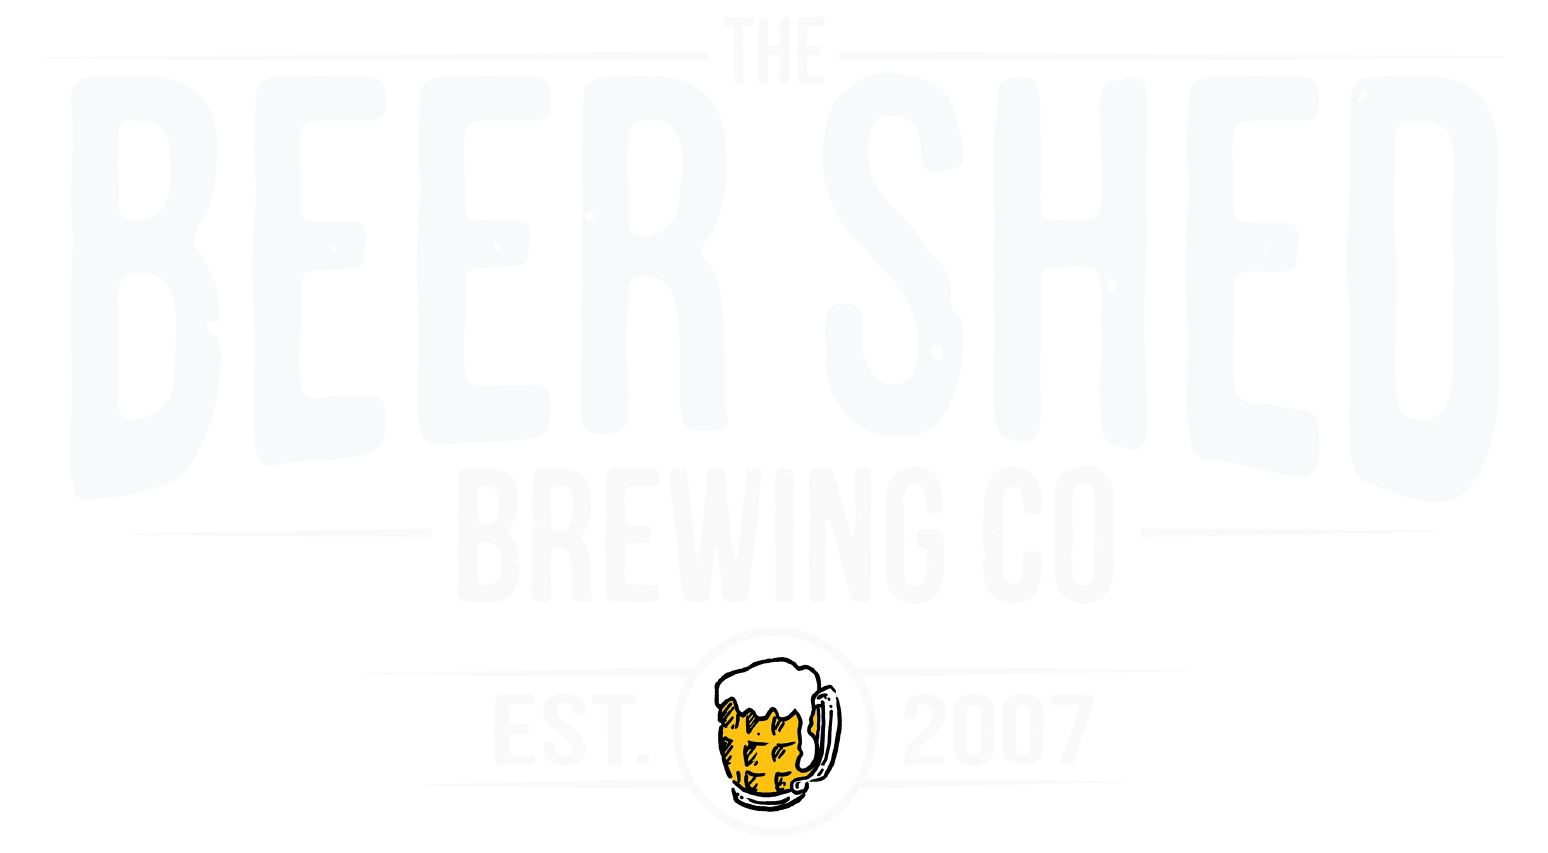 The Beer Shed Brewing co